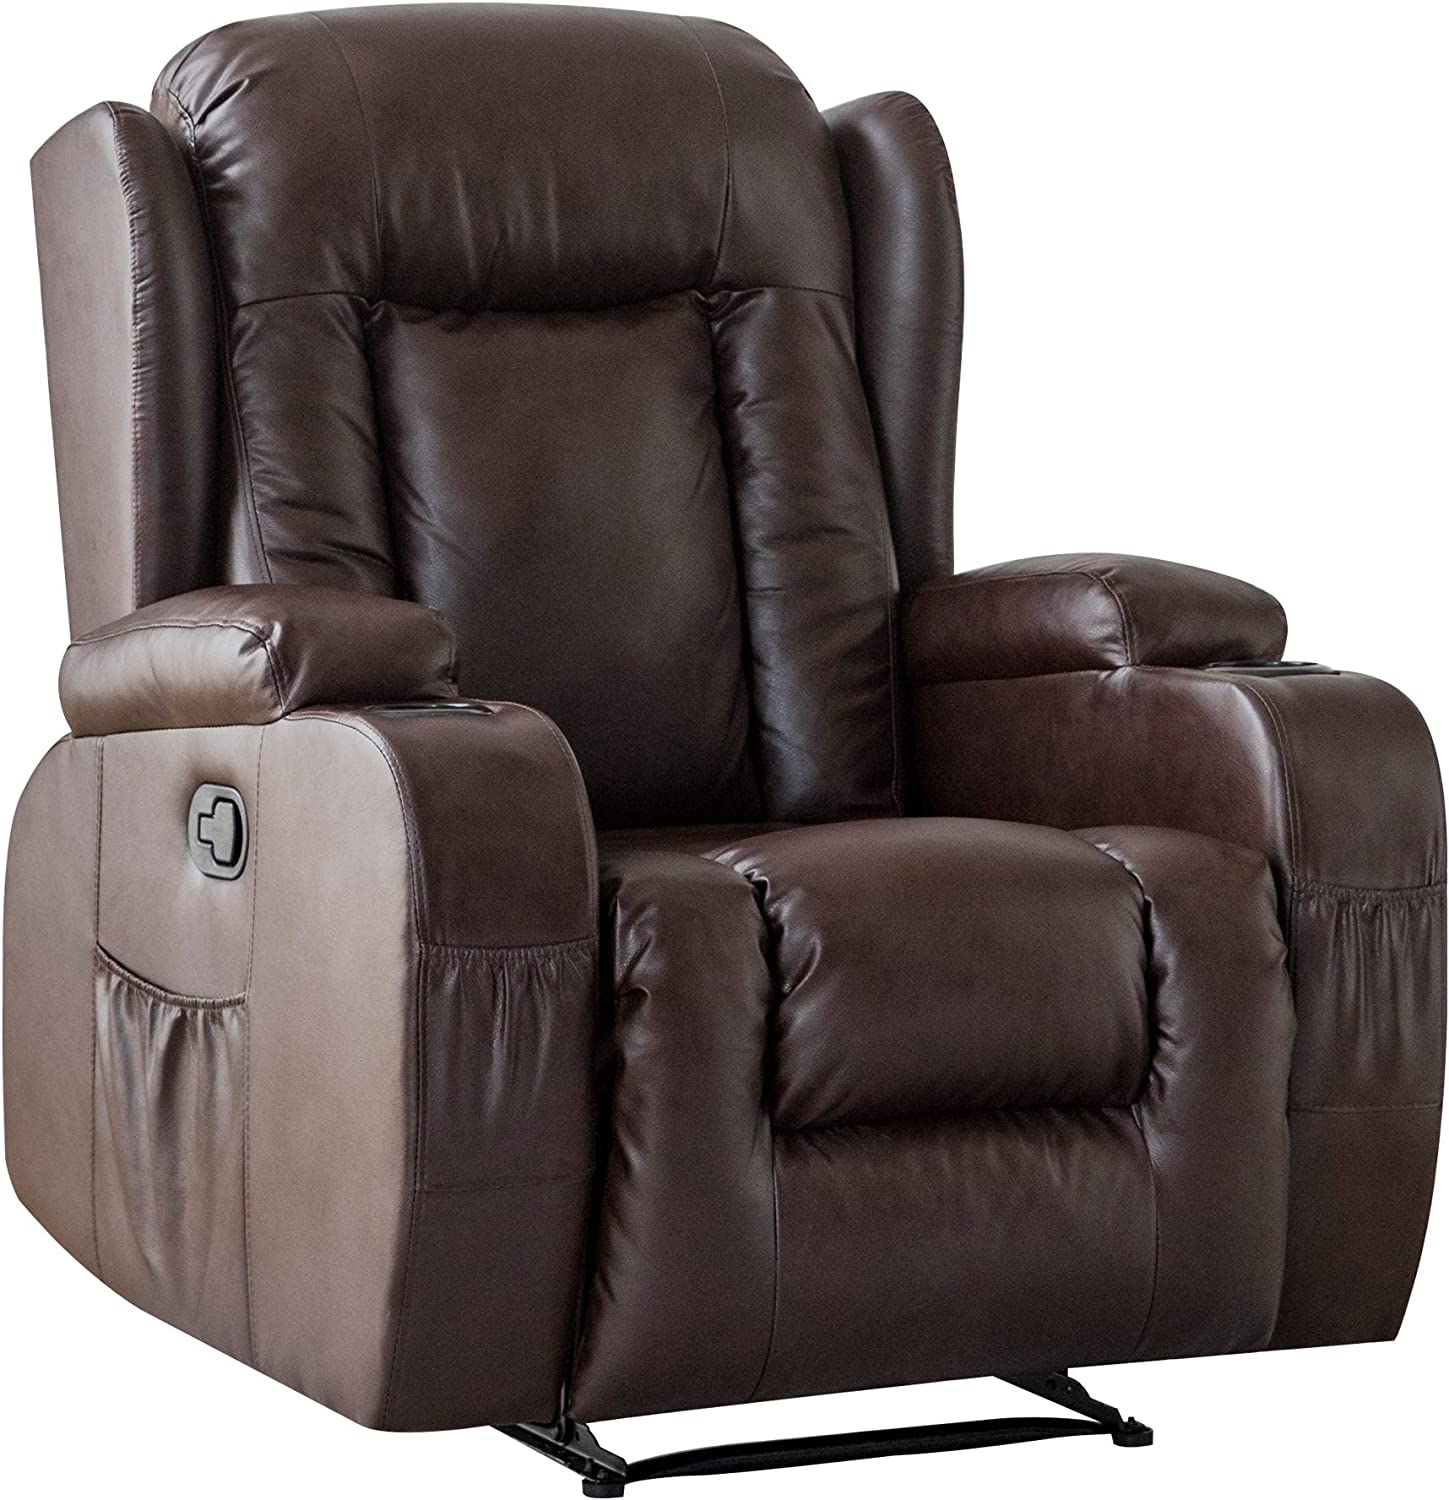 Recliner Chair Sofa PU Leather Chaise Lounge Indoor with Drink Holders for Living Room Home Theater Modern Seat (Coffee)